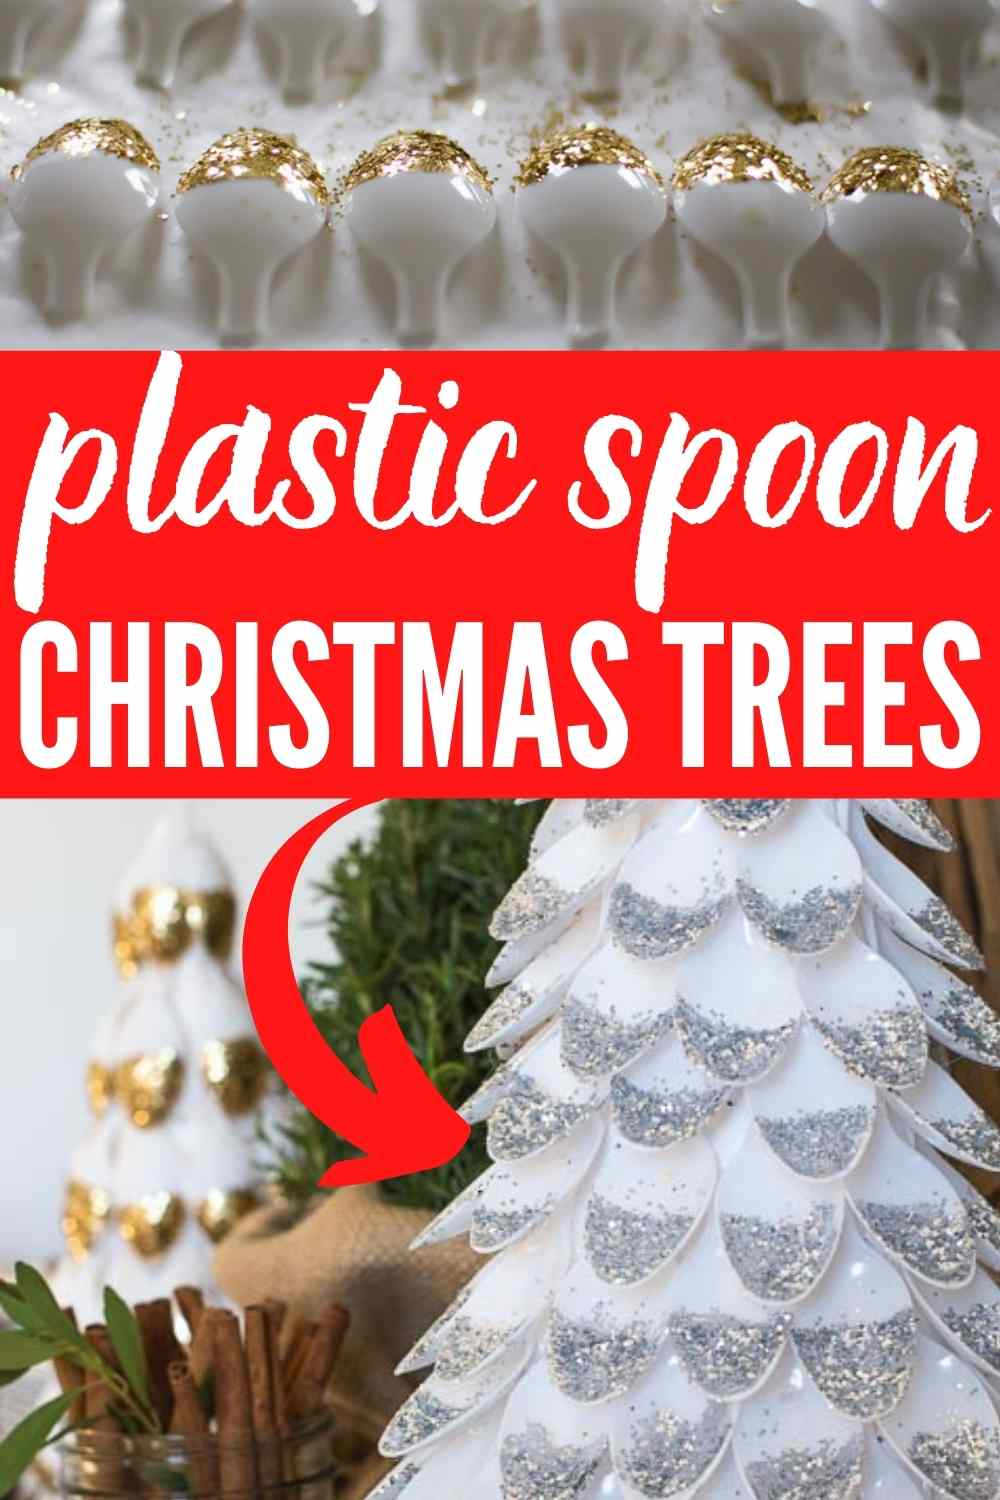 Text: Plastic Spoon Christmas Trees image of glittered spoons and a completed plastic spoon christmas tree craft